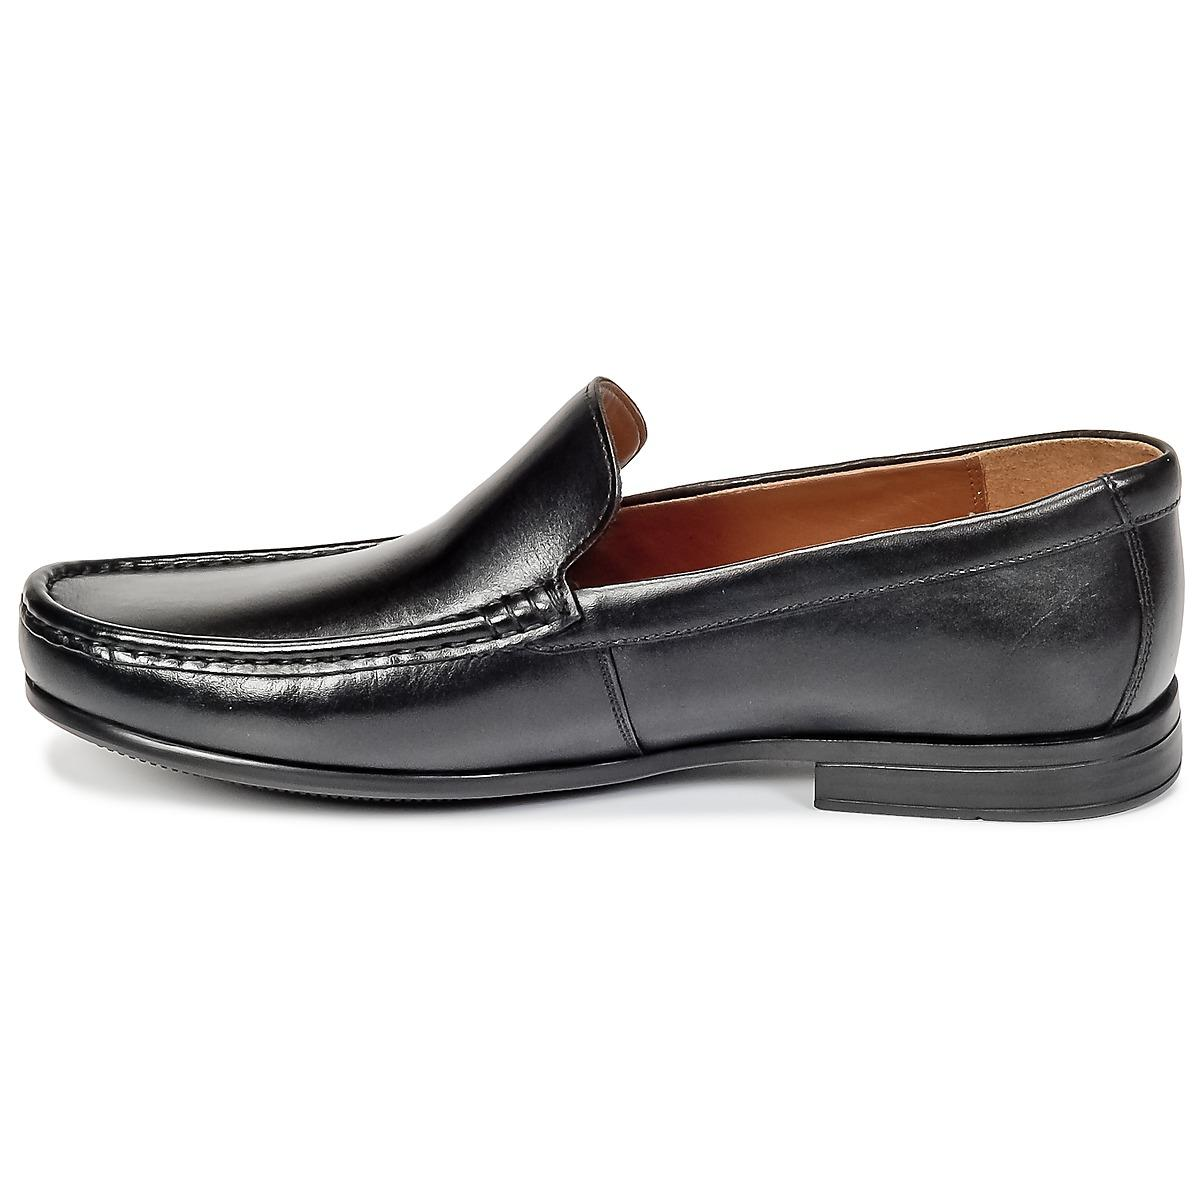 Clarks Synthetic Claude Plain Loafers / Casual Shoes in Black for Men